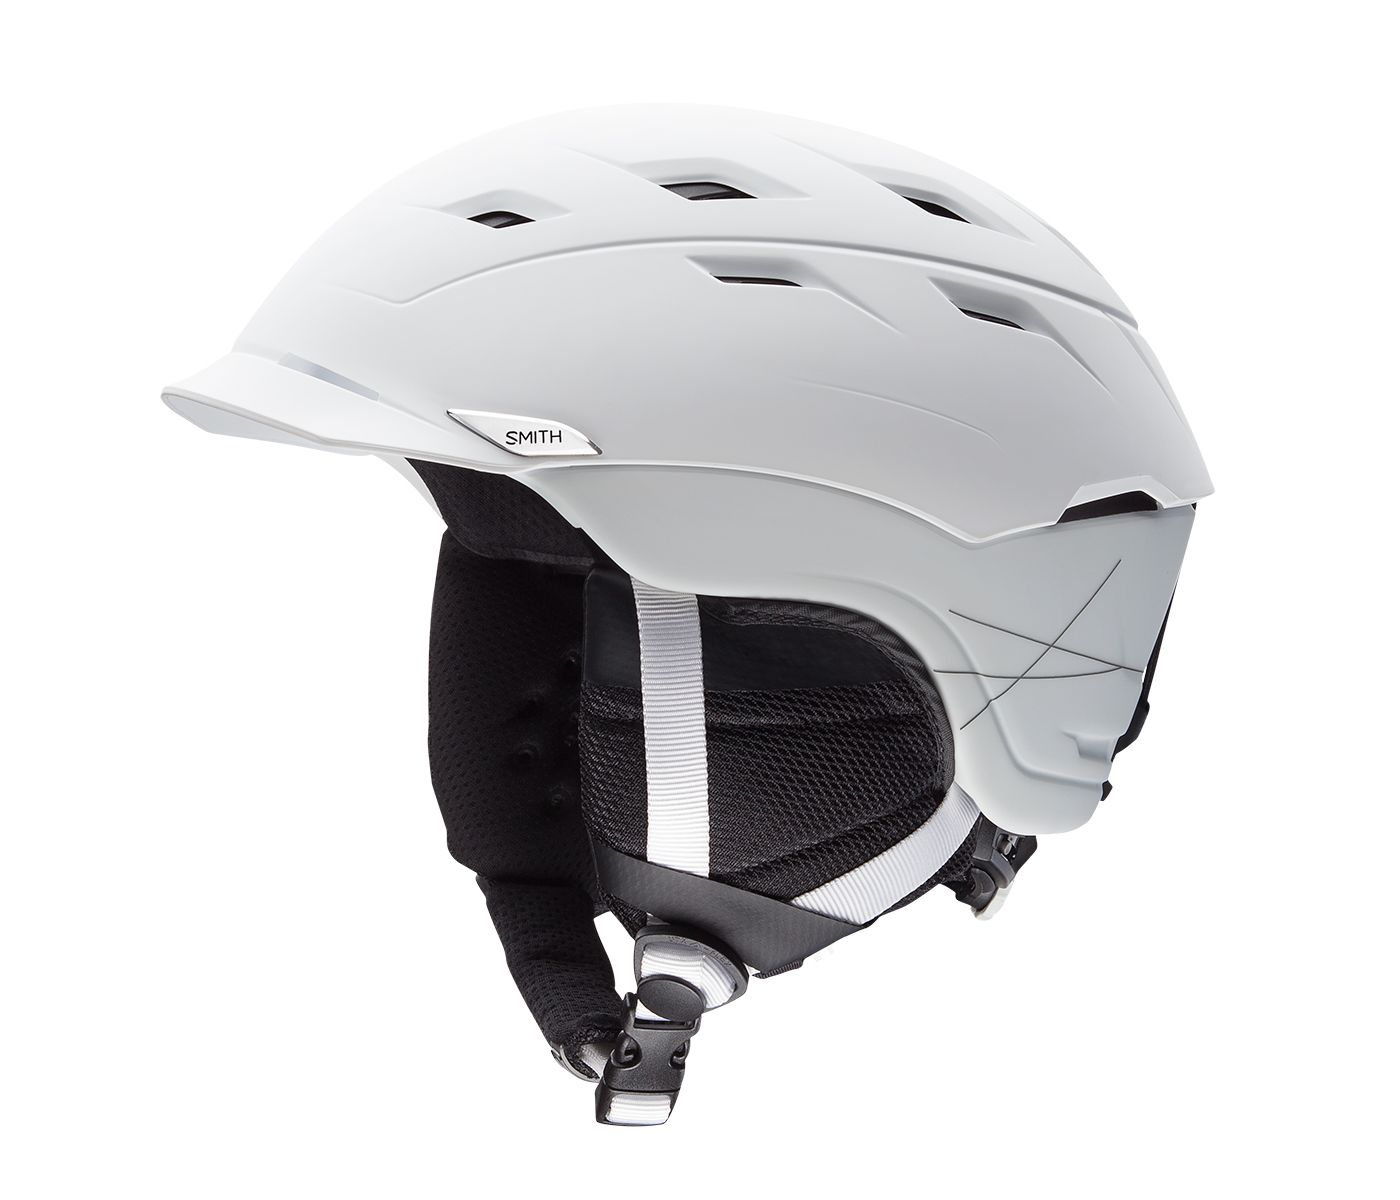 SMITH Adult Variance Snow Helmet